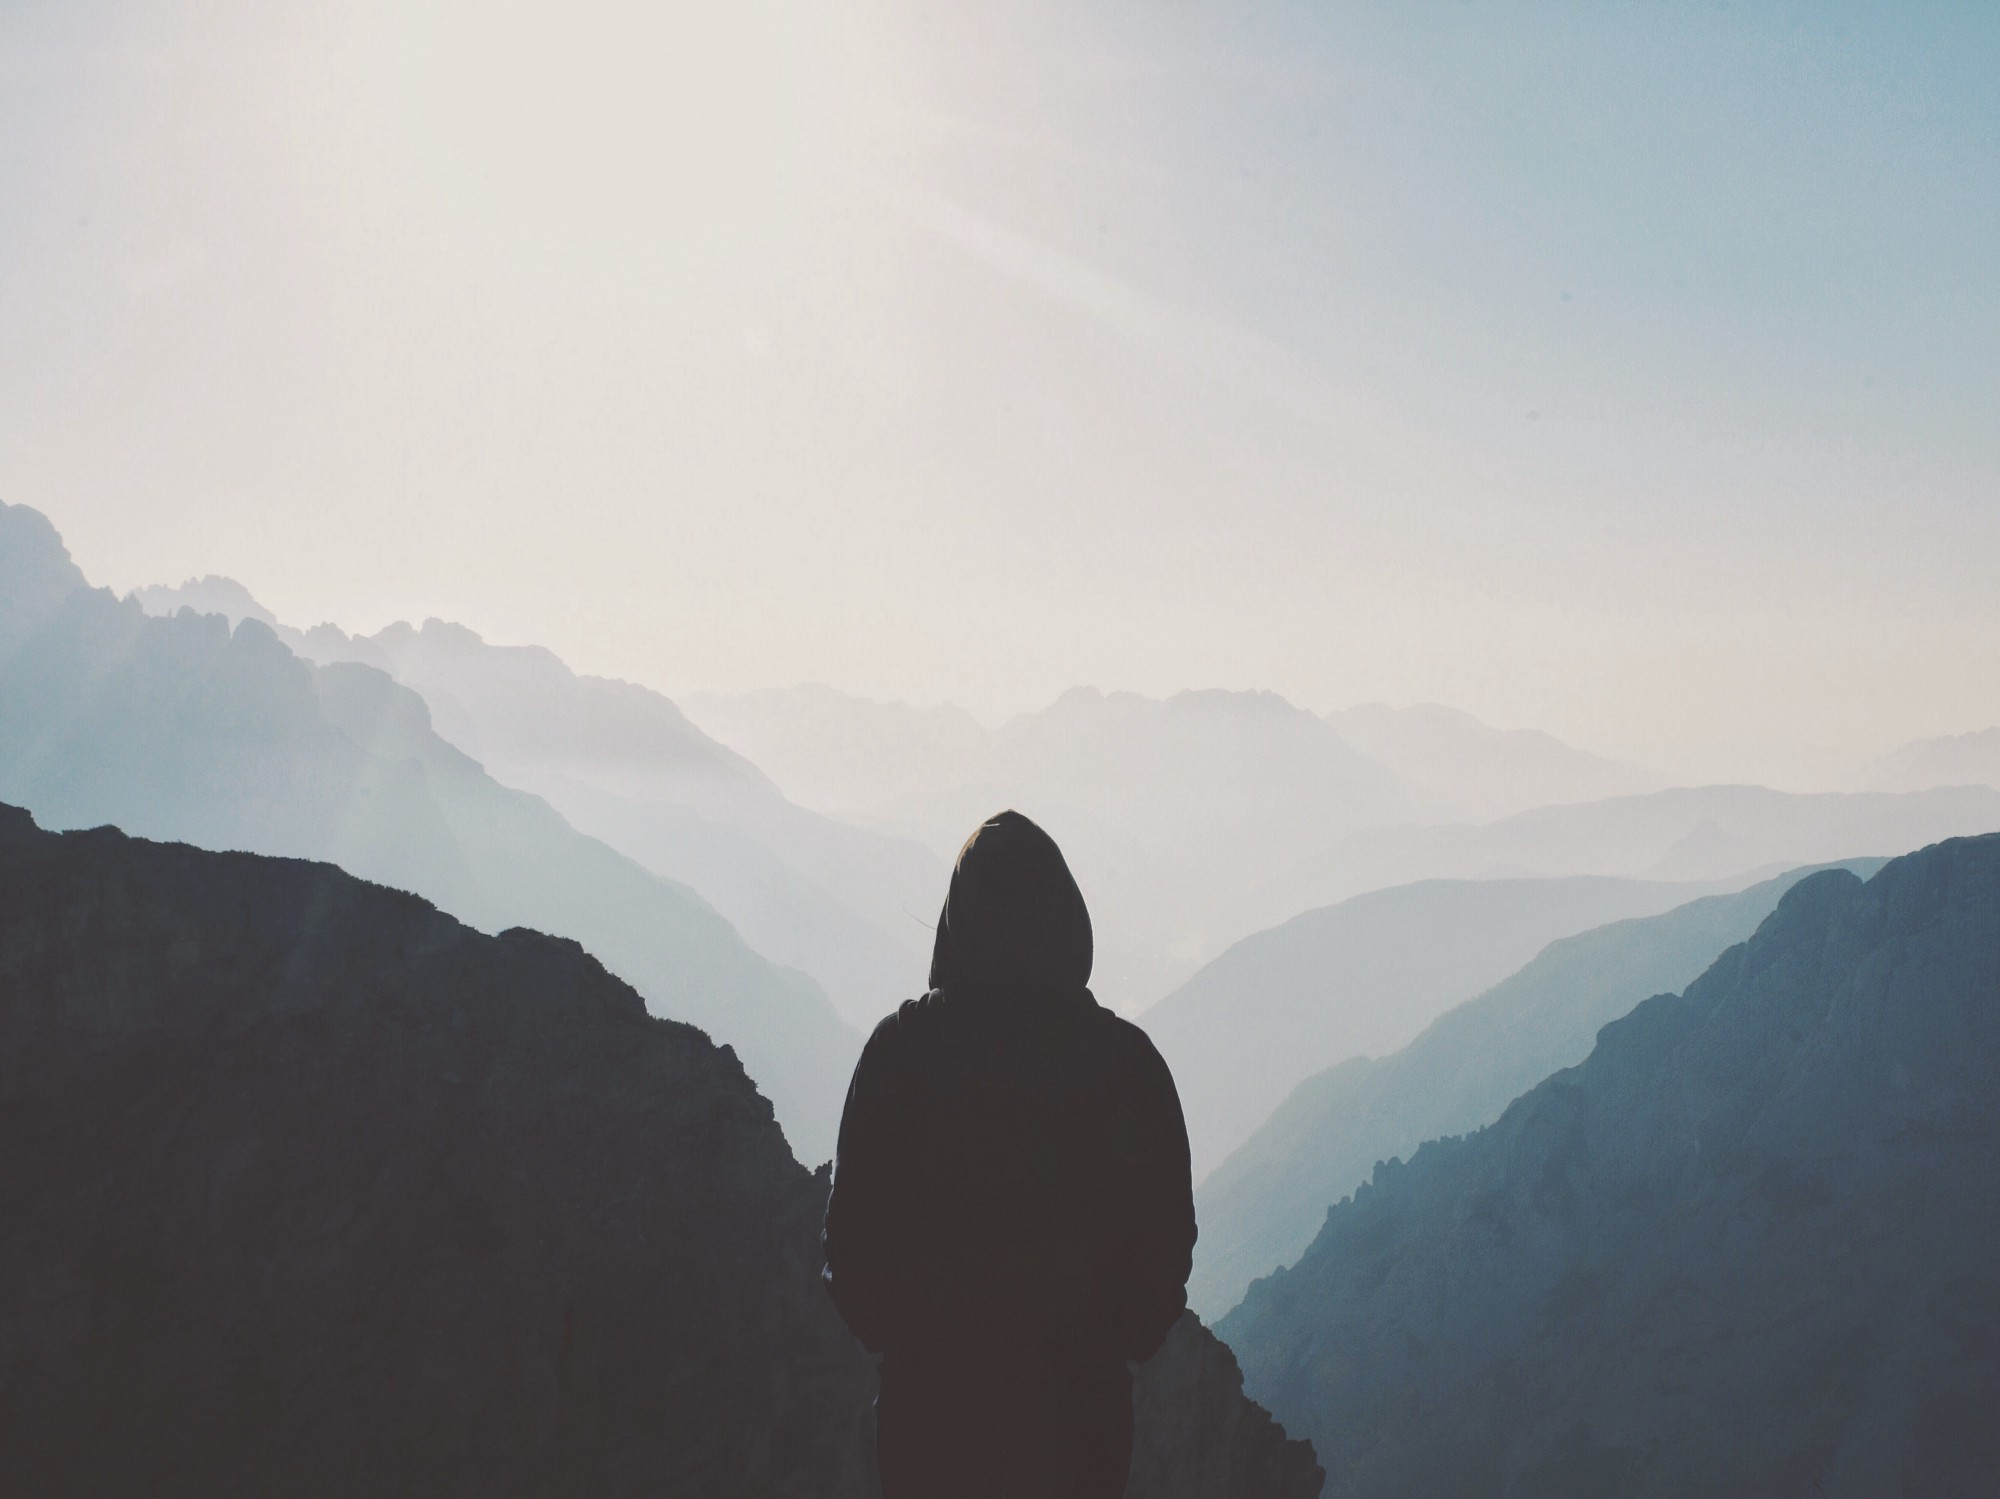 A hooded figure staring at a mountain valley